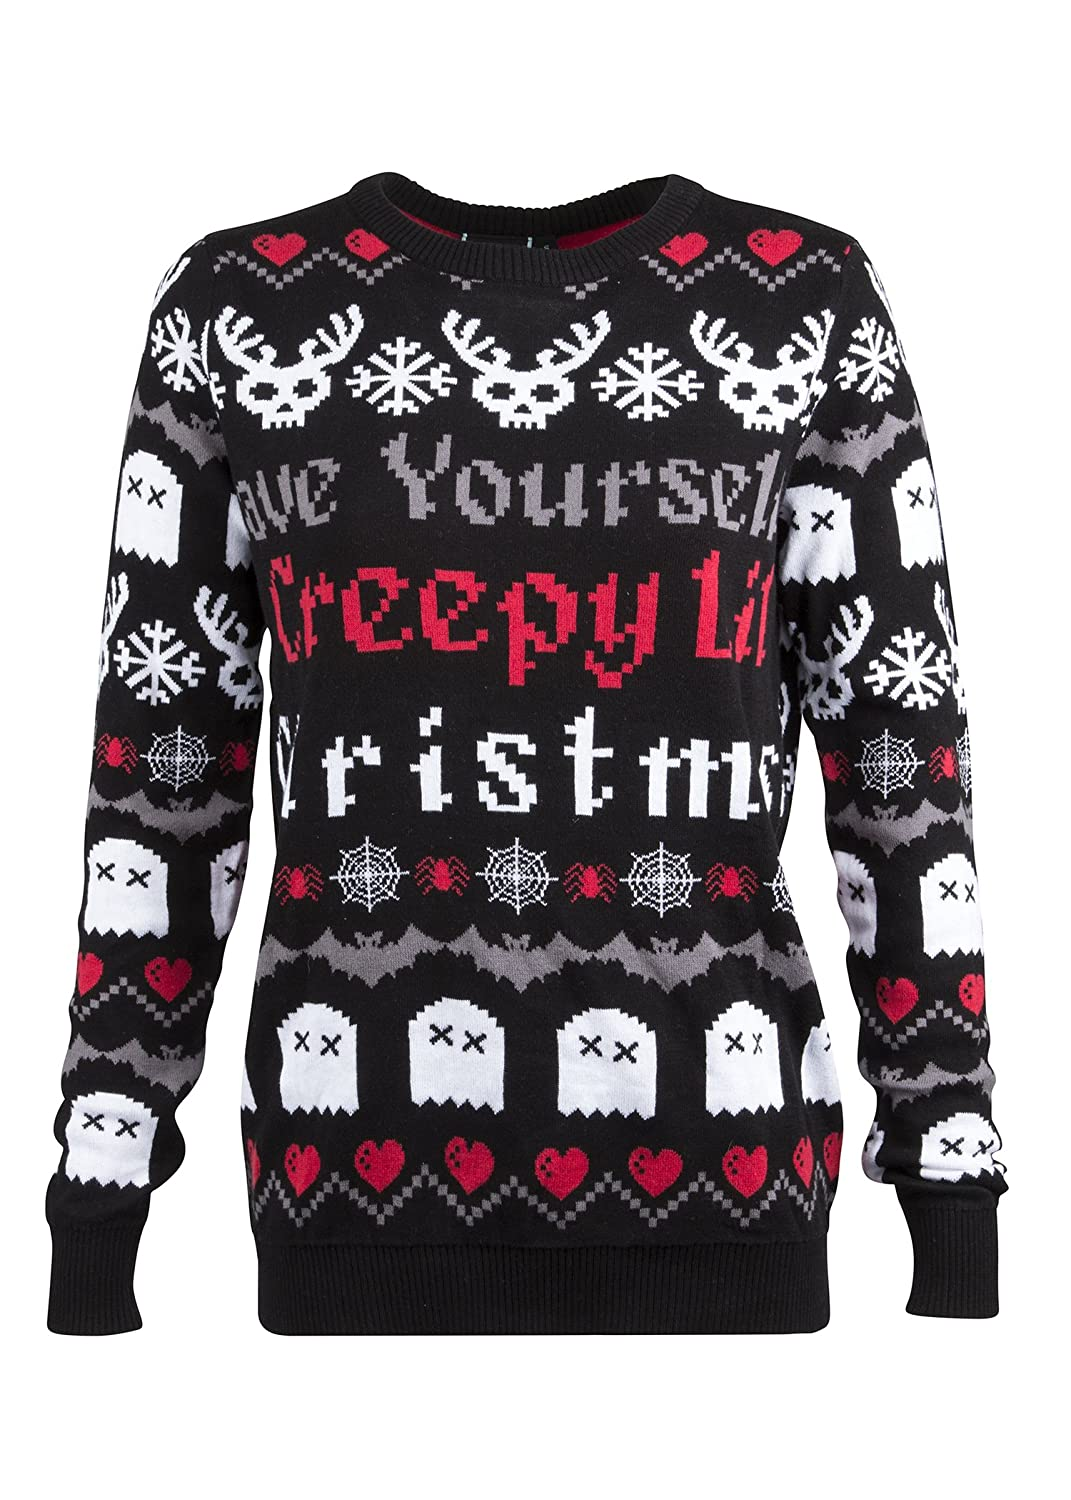 13c73e86c Amazon.com  Too Fast Clothing Have Yourself Creepy Lil Christmas ...